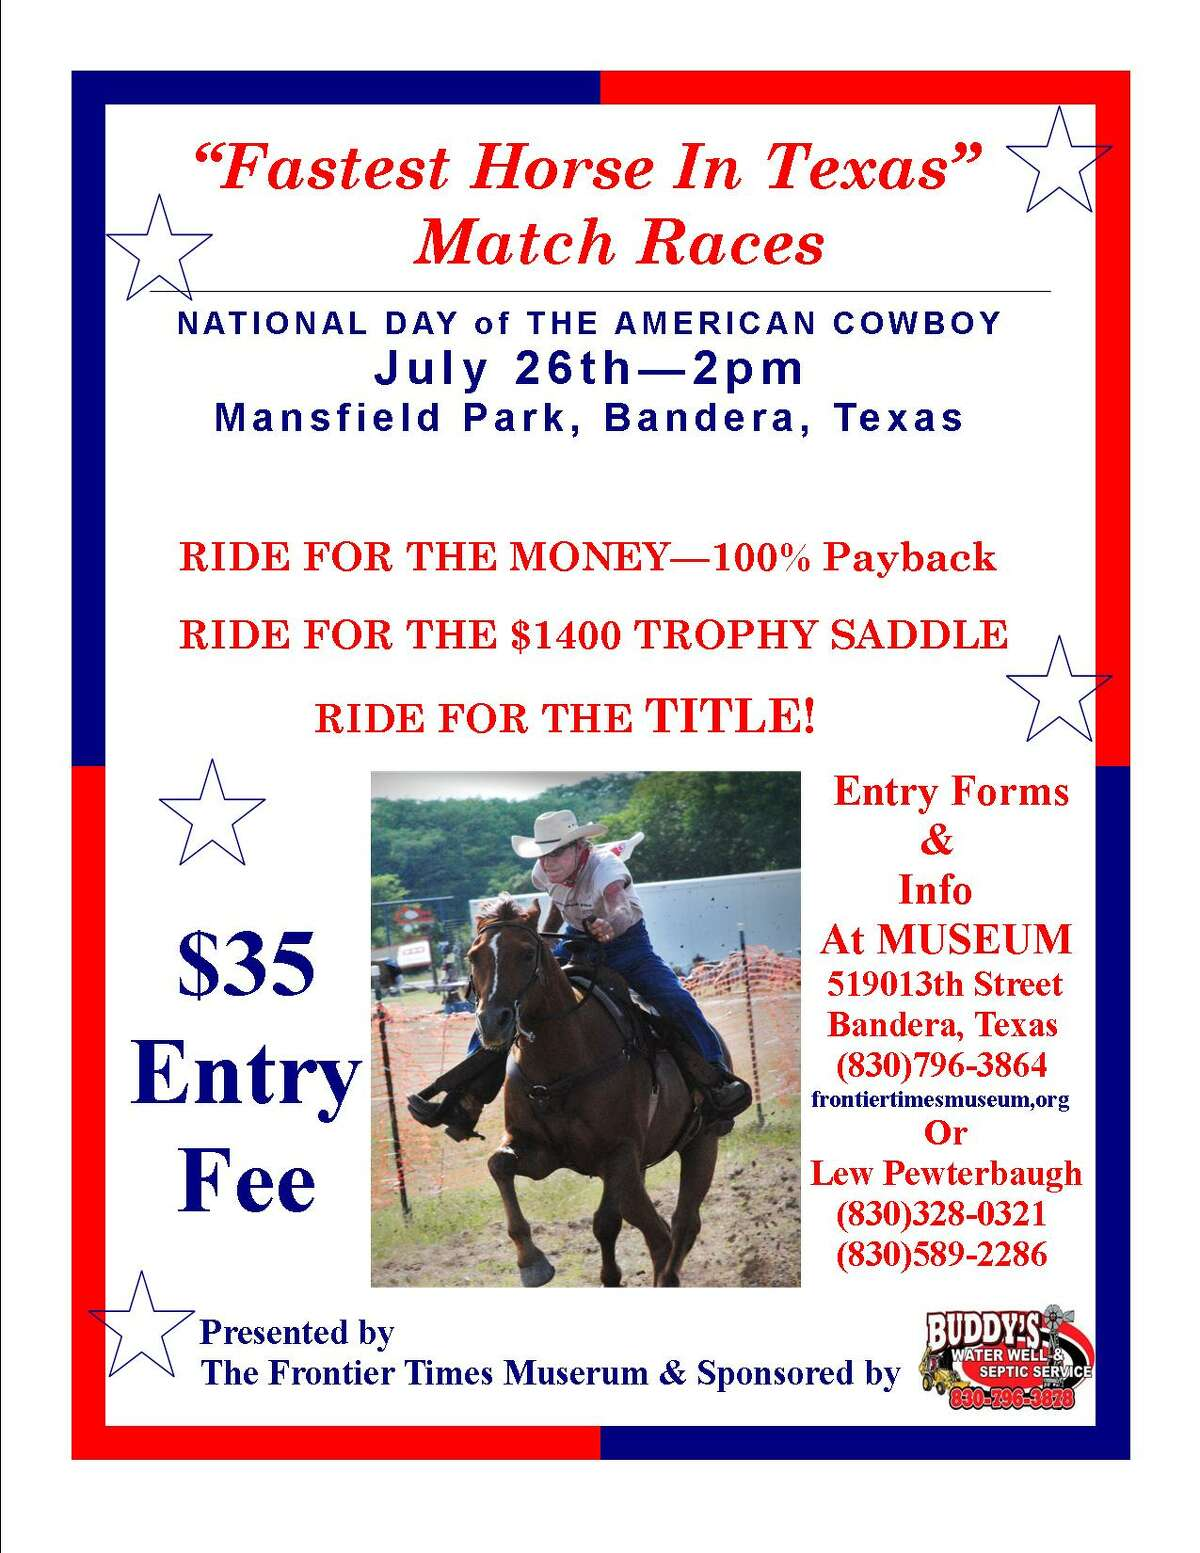 The fee for participants is $35, $25 for anyone racing a Texas Longhorn.